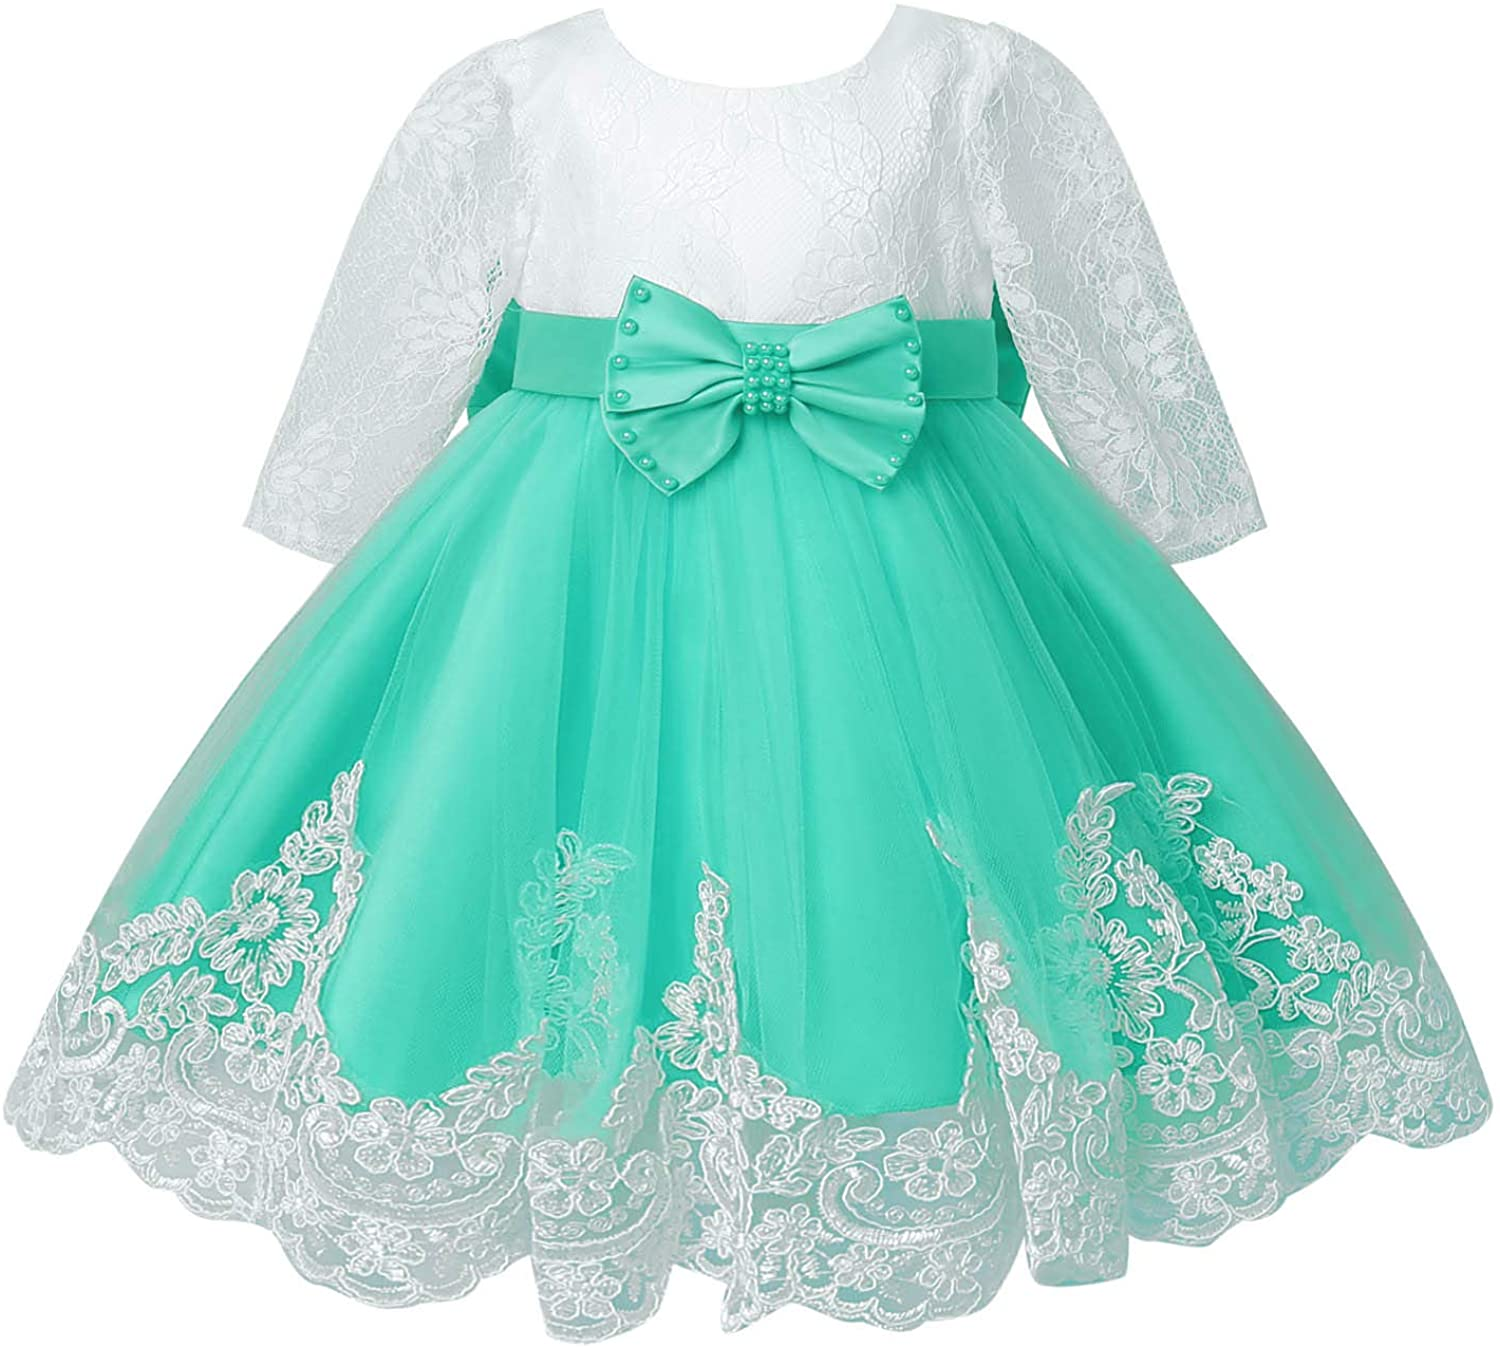 YiZYiF Princess Flower Dress Lace Long Sleeve Wedding Birthday Party Ball Gown for Infant Baby Girls